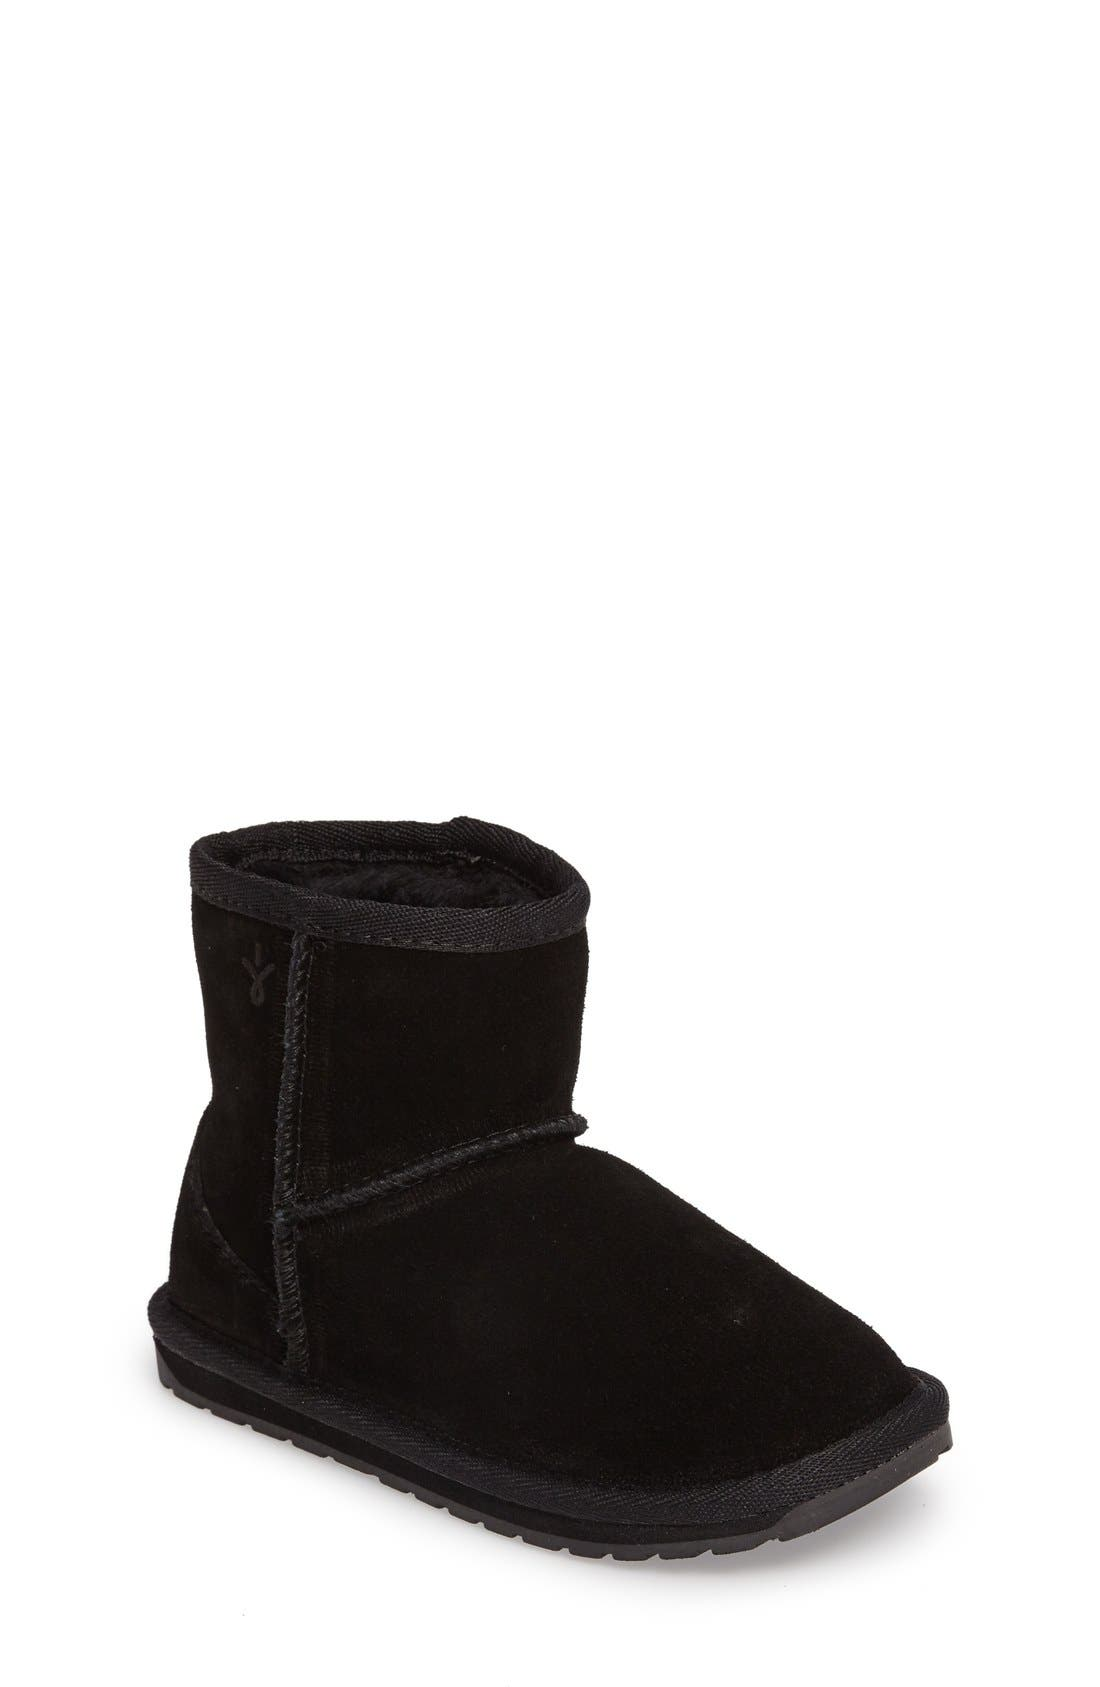 Wallaby Boot,                         Main,                         color, Black